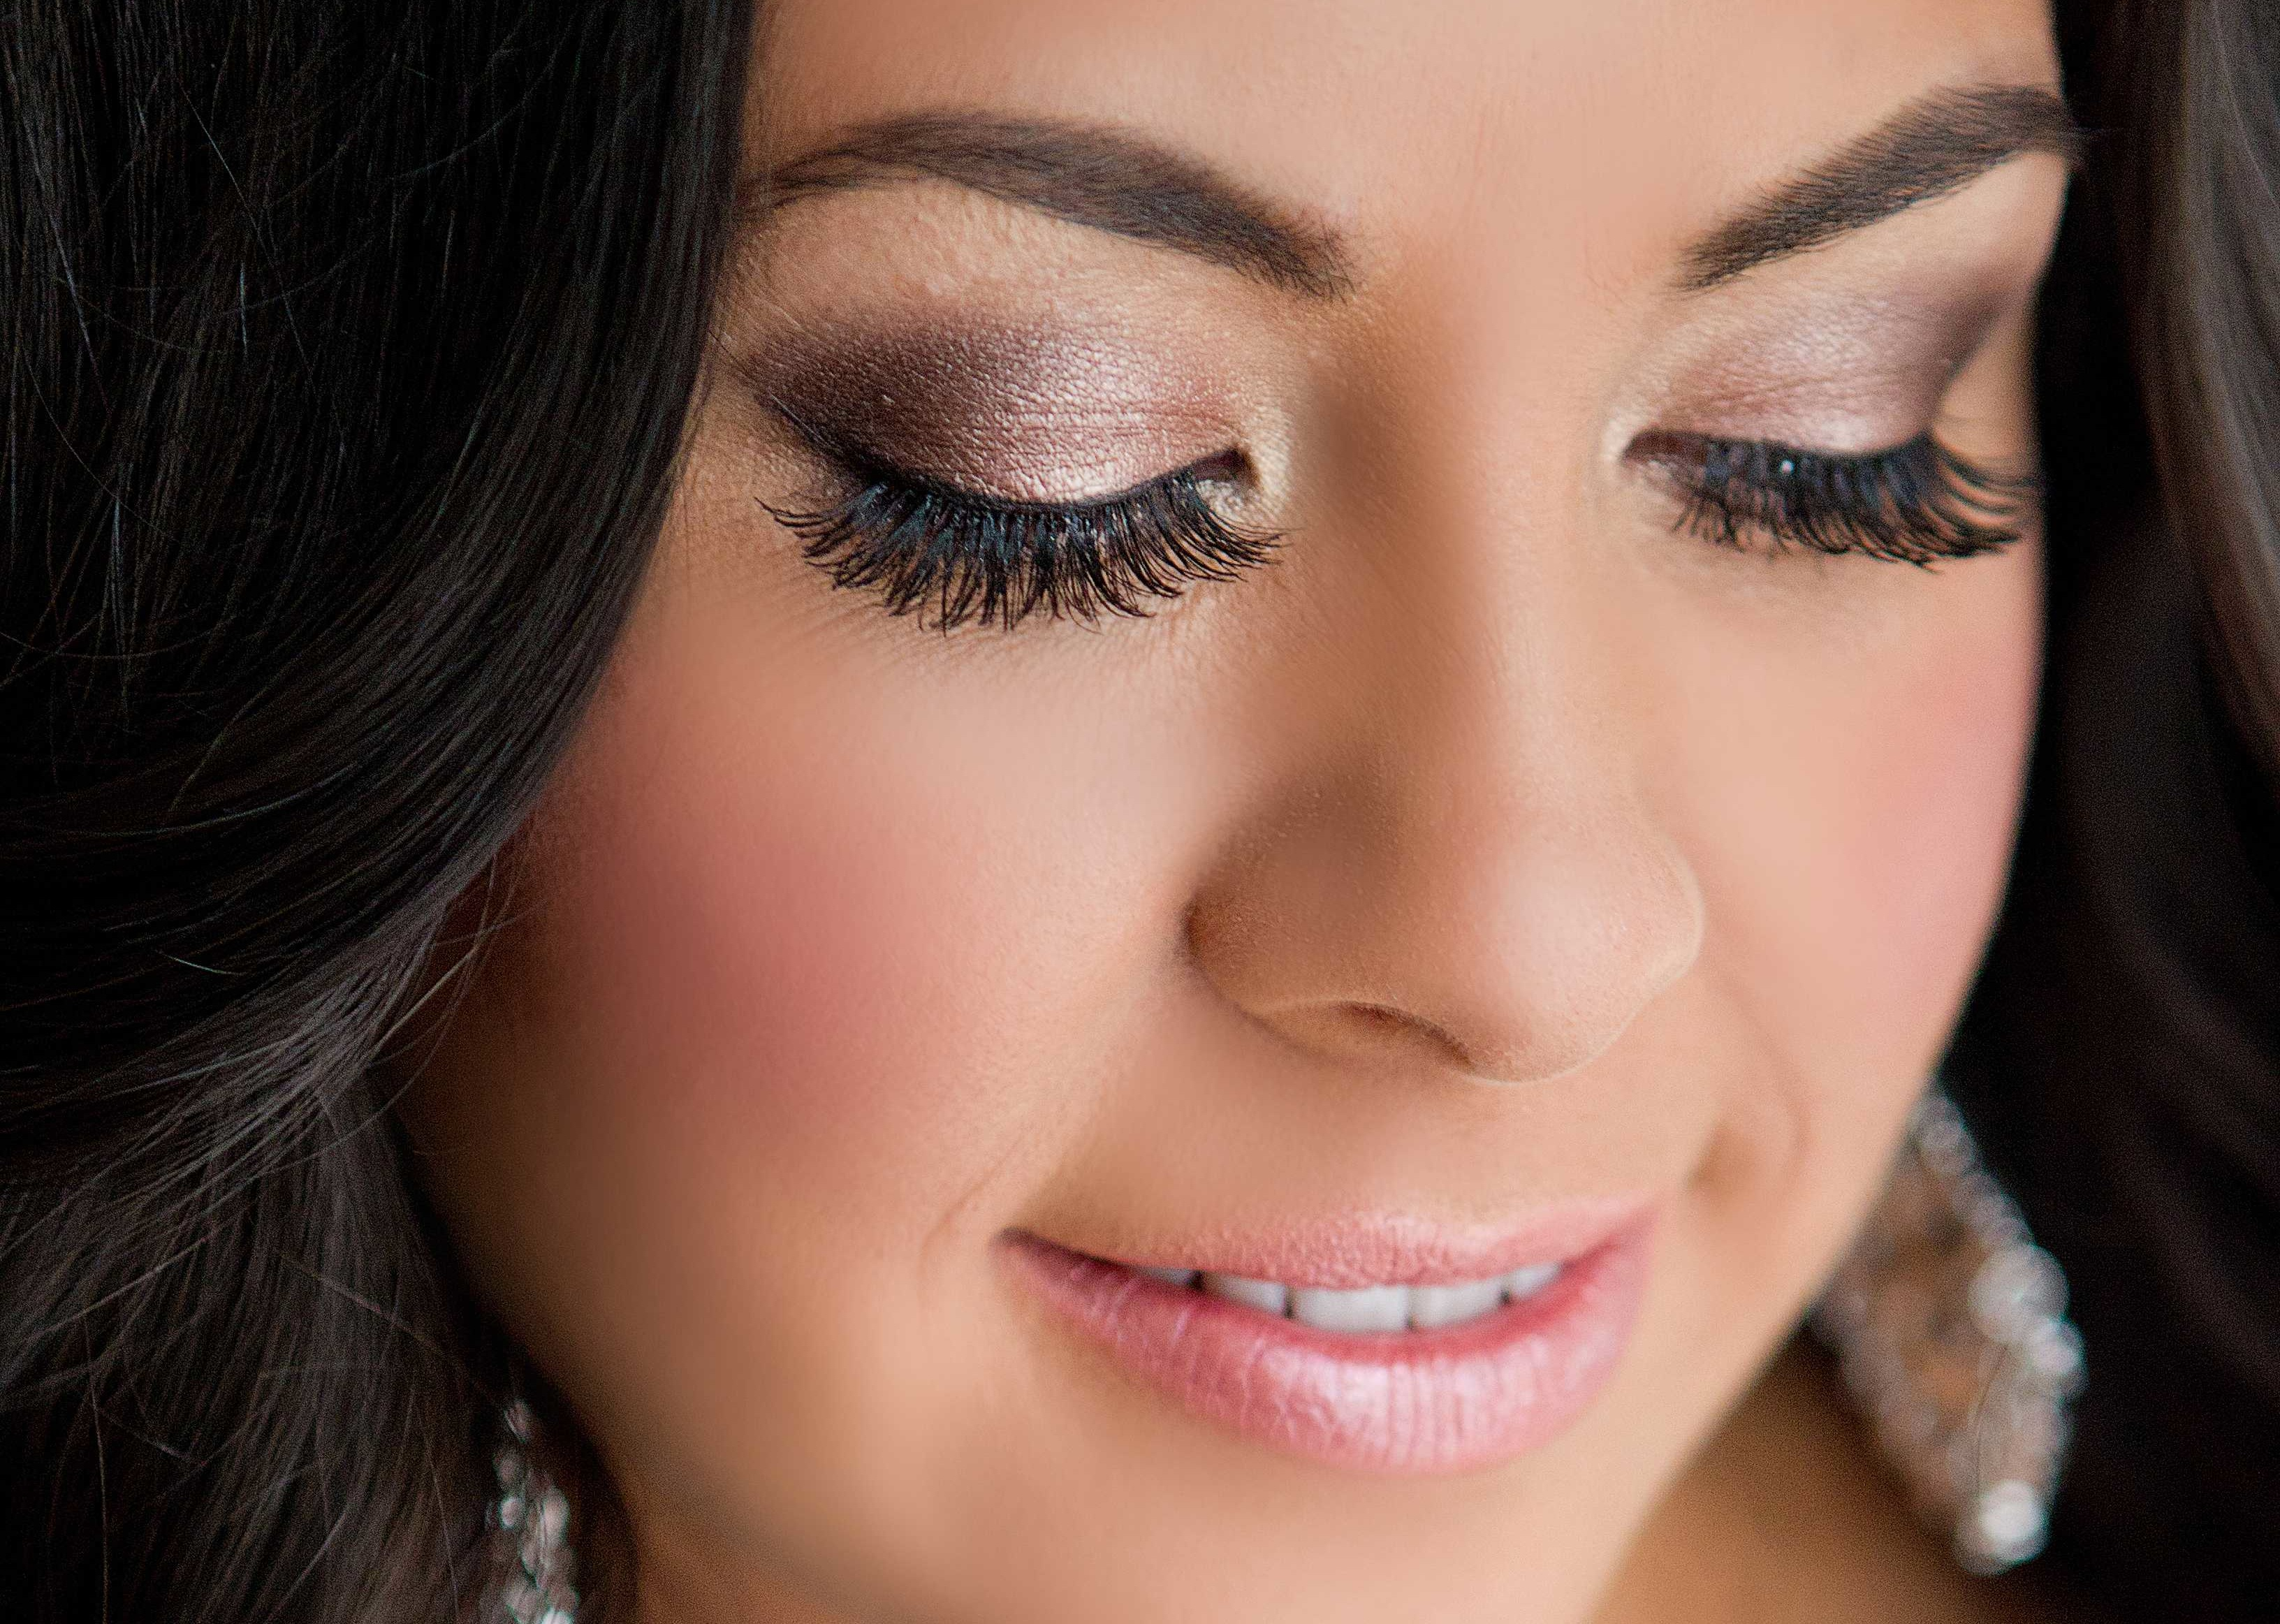 Doing My Own Wedding Makeup Suggestions : Makeup Inspiration Help! - Weddingbee